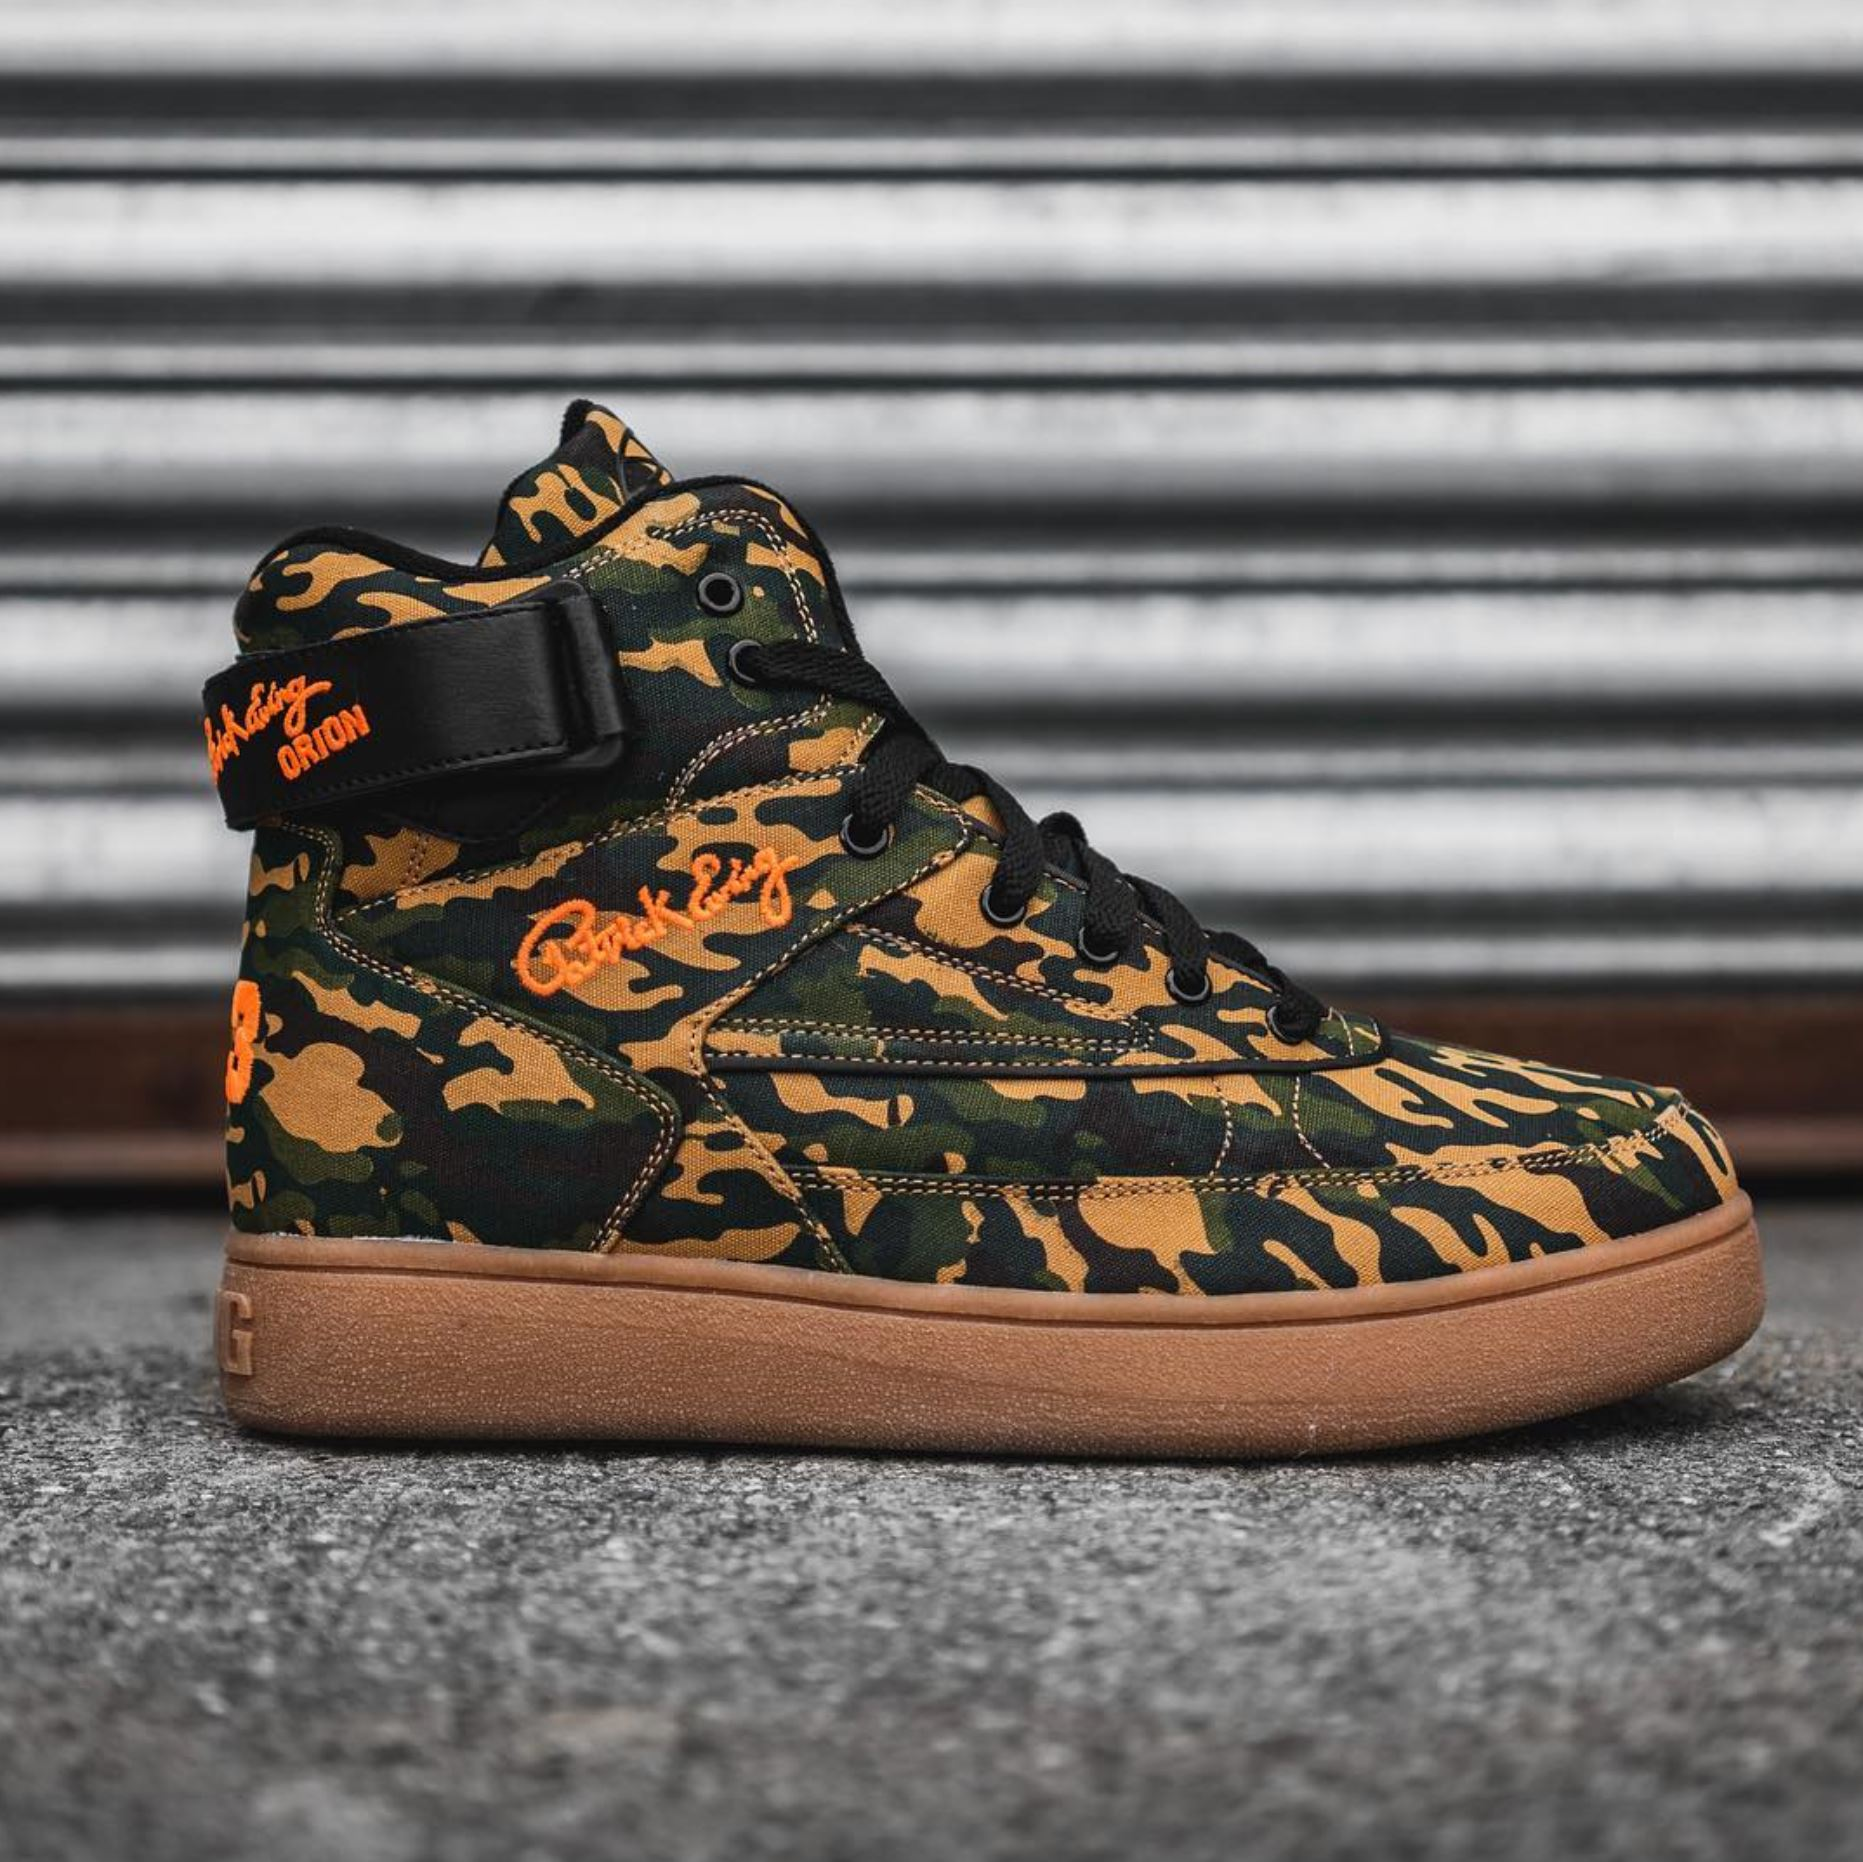 The Ewing Orion Gets New Camo and